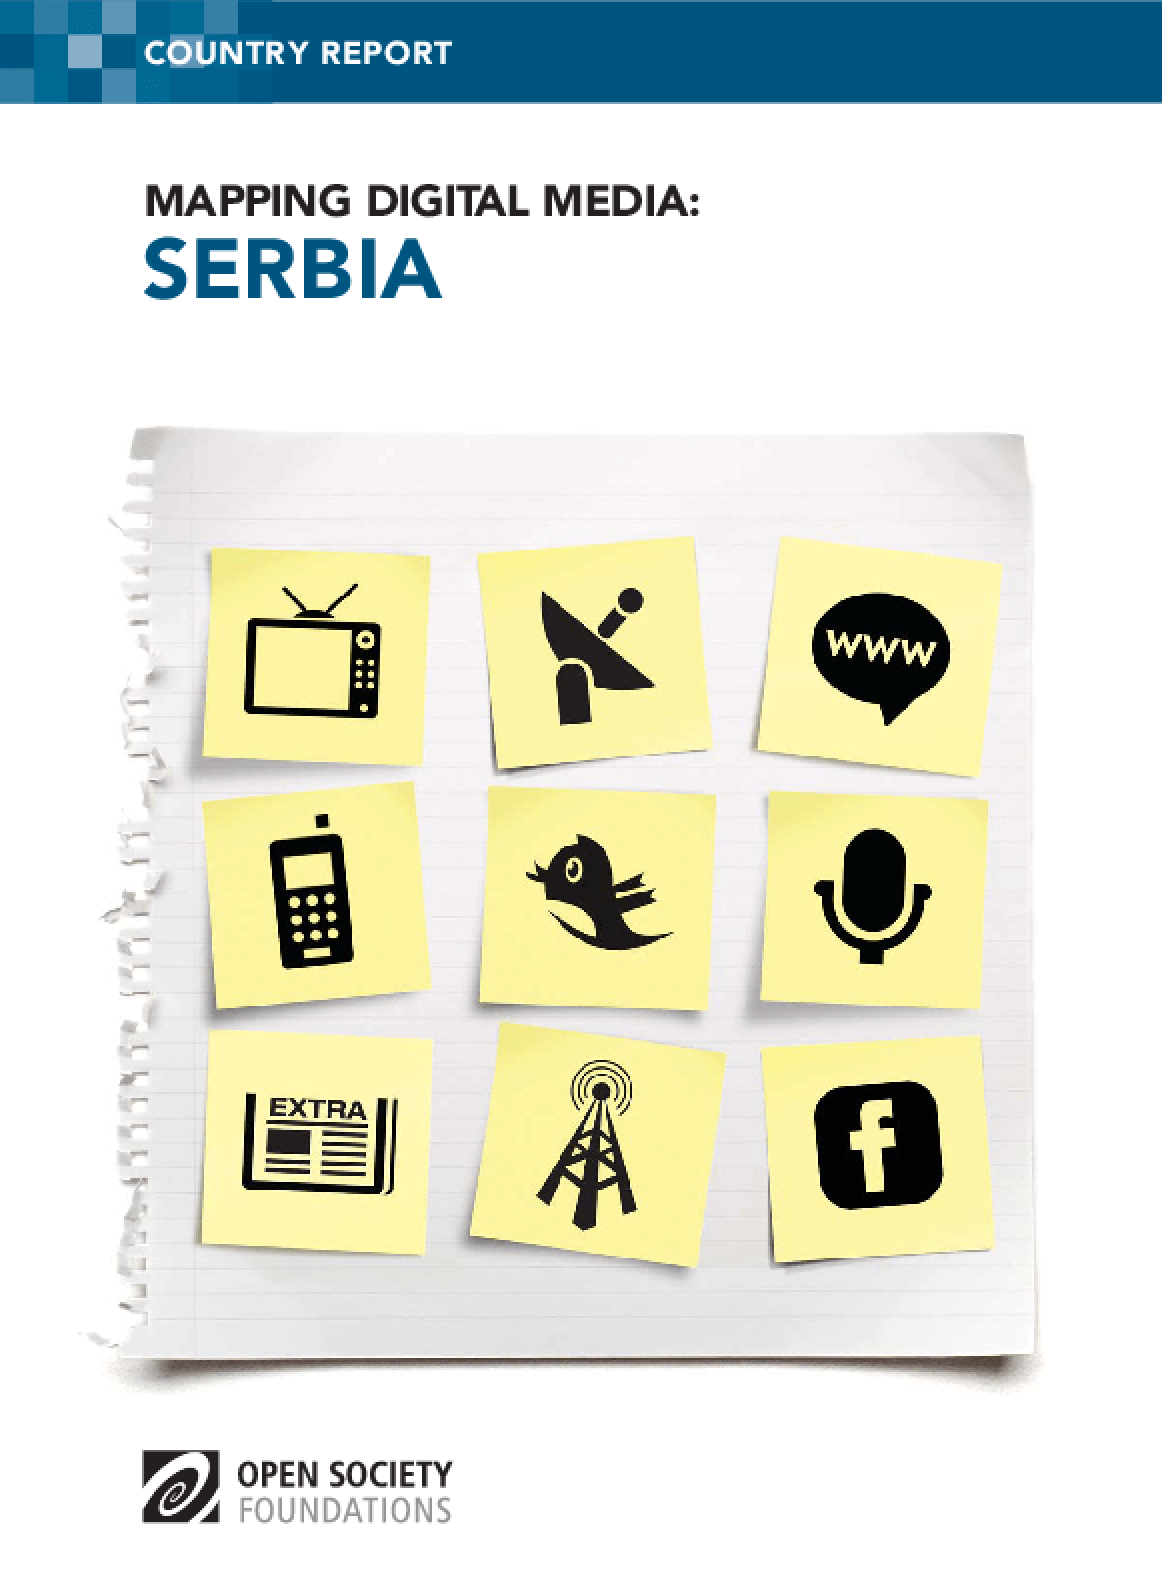 Mapping Digital Media: Serbia